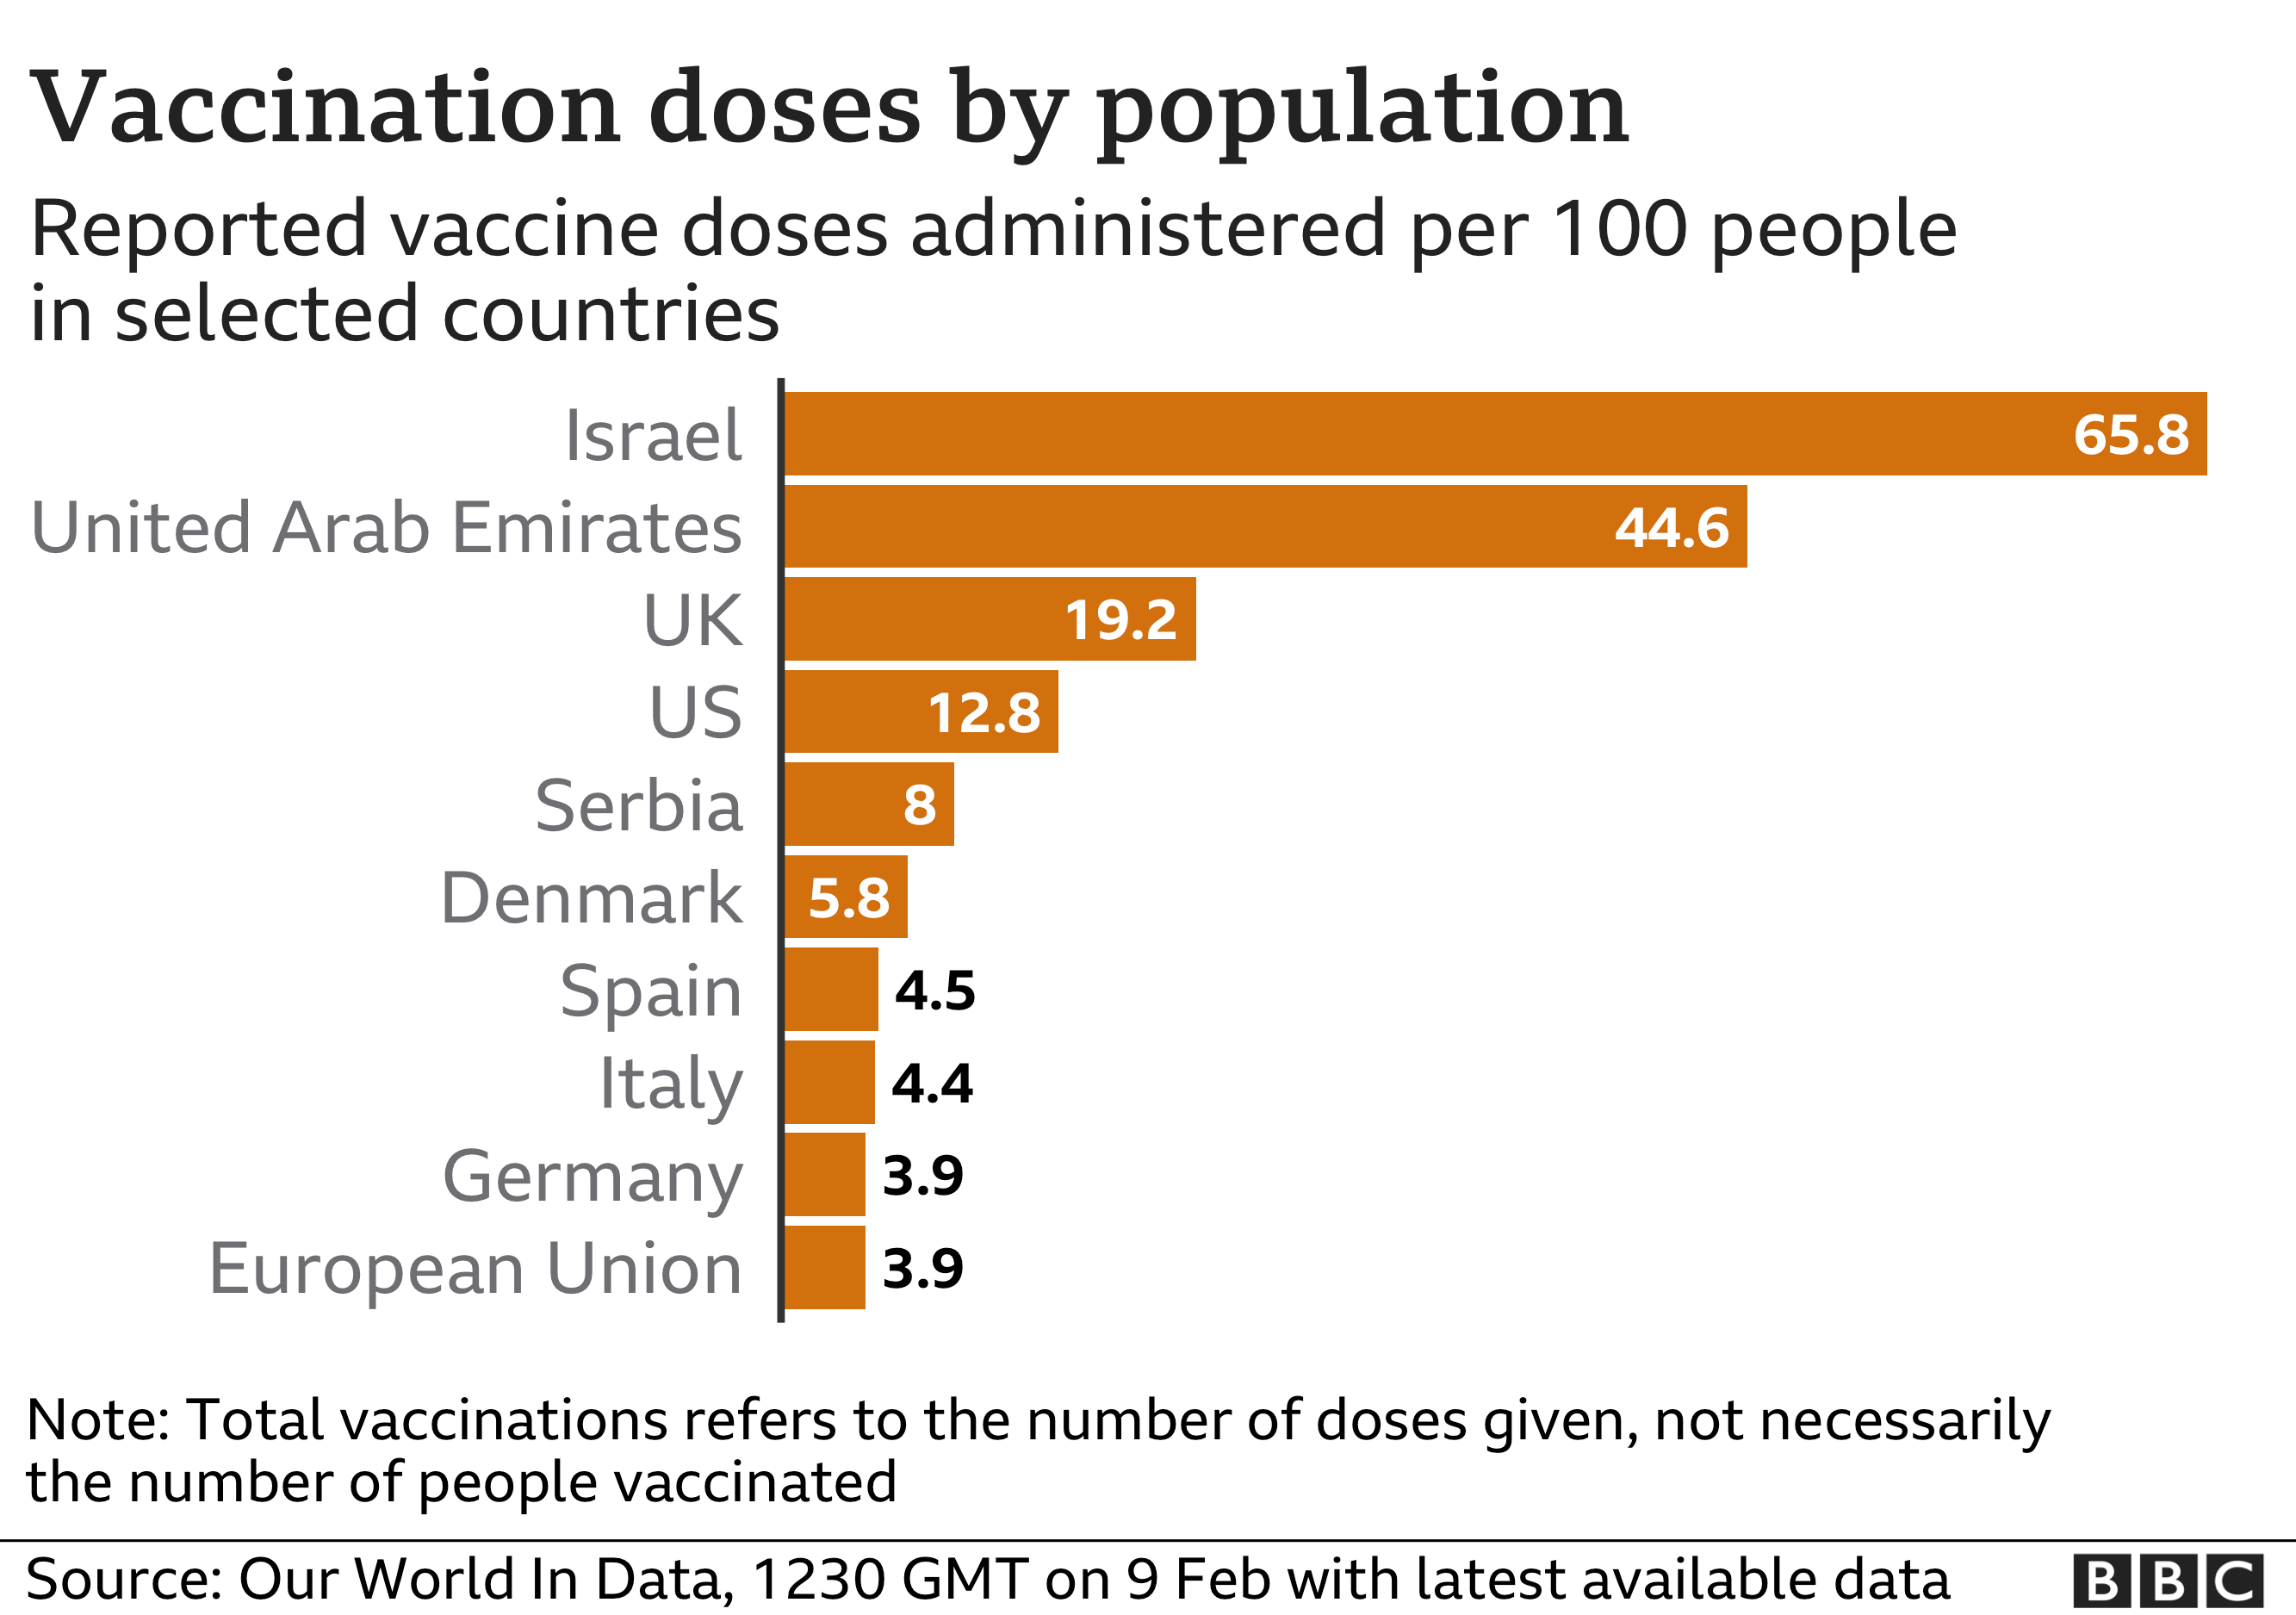 Vaccine does per 100,000 in selected countries